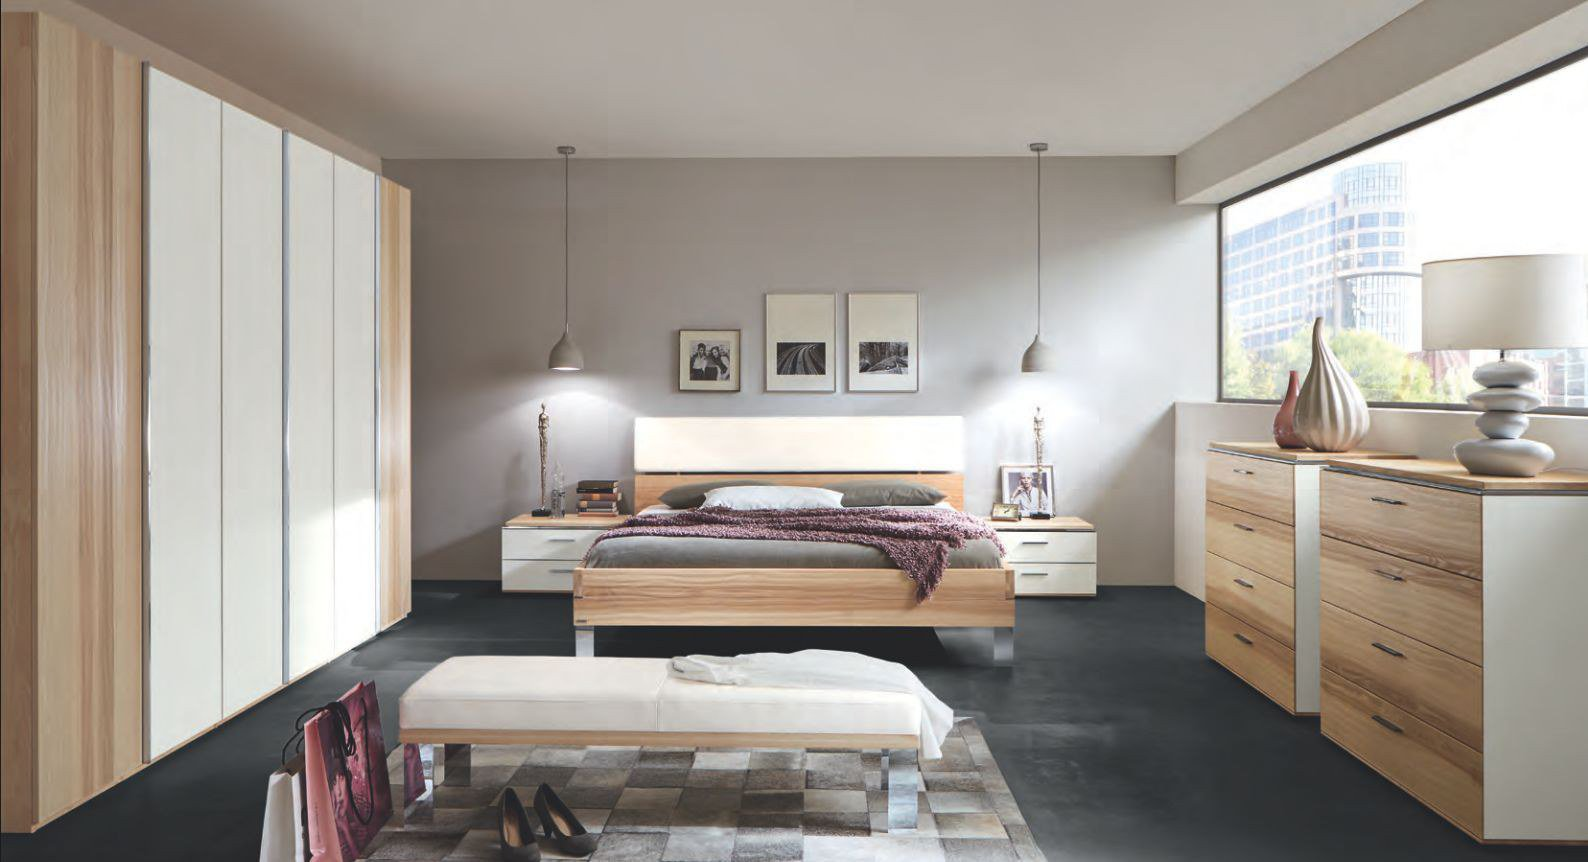 thielemeyer schlafzimmer loft strukturesche glas m bel. Black Bedroom Furniture Sets. Home Design Ideas